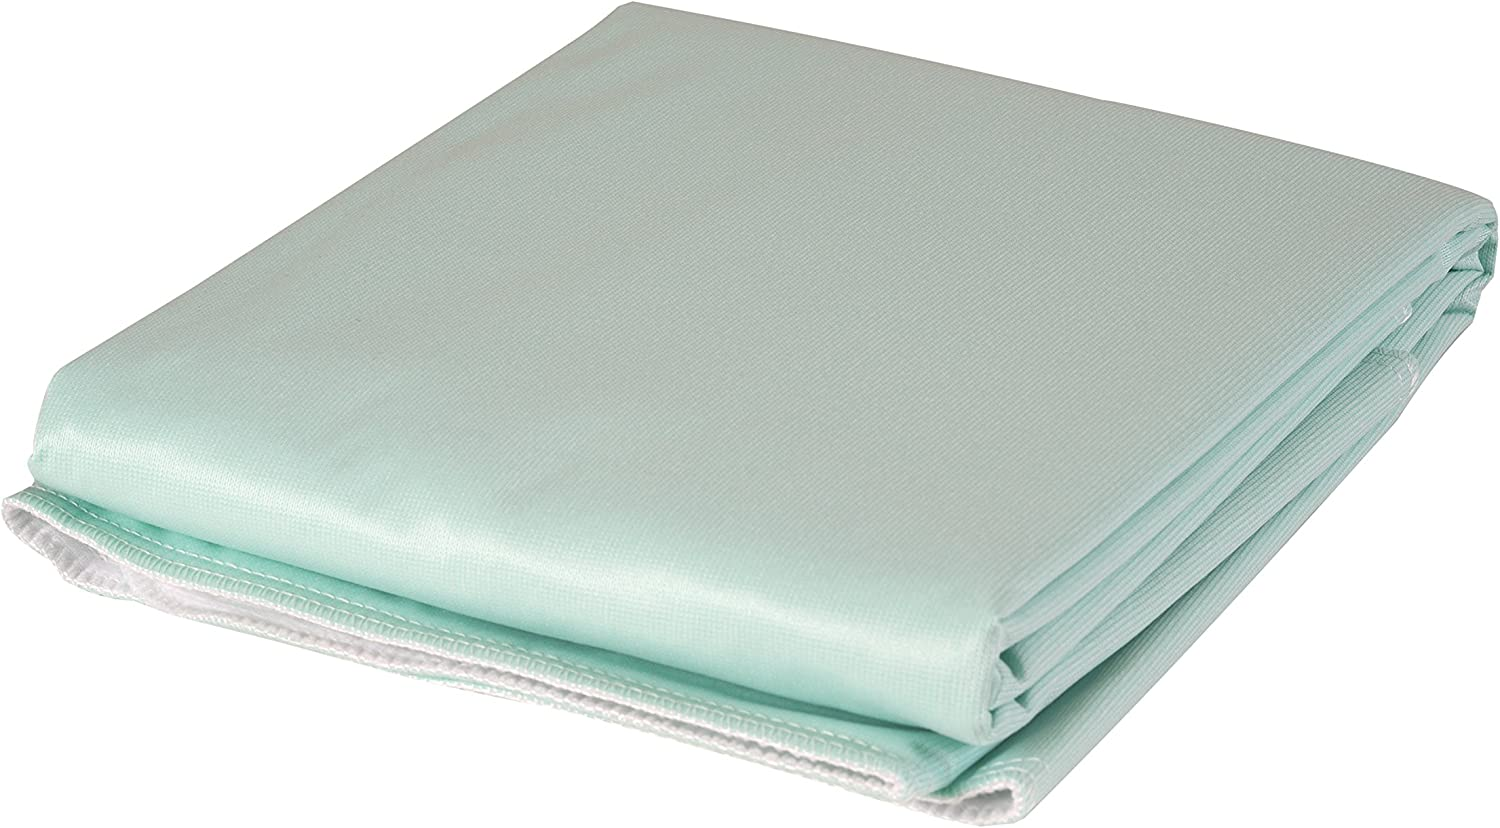 DMI Incontinence Reusable Bed Pad, Washable and Waterproof, 30 x 36: Health & Personal Care